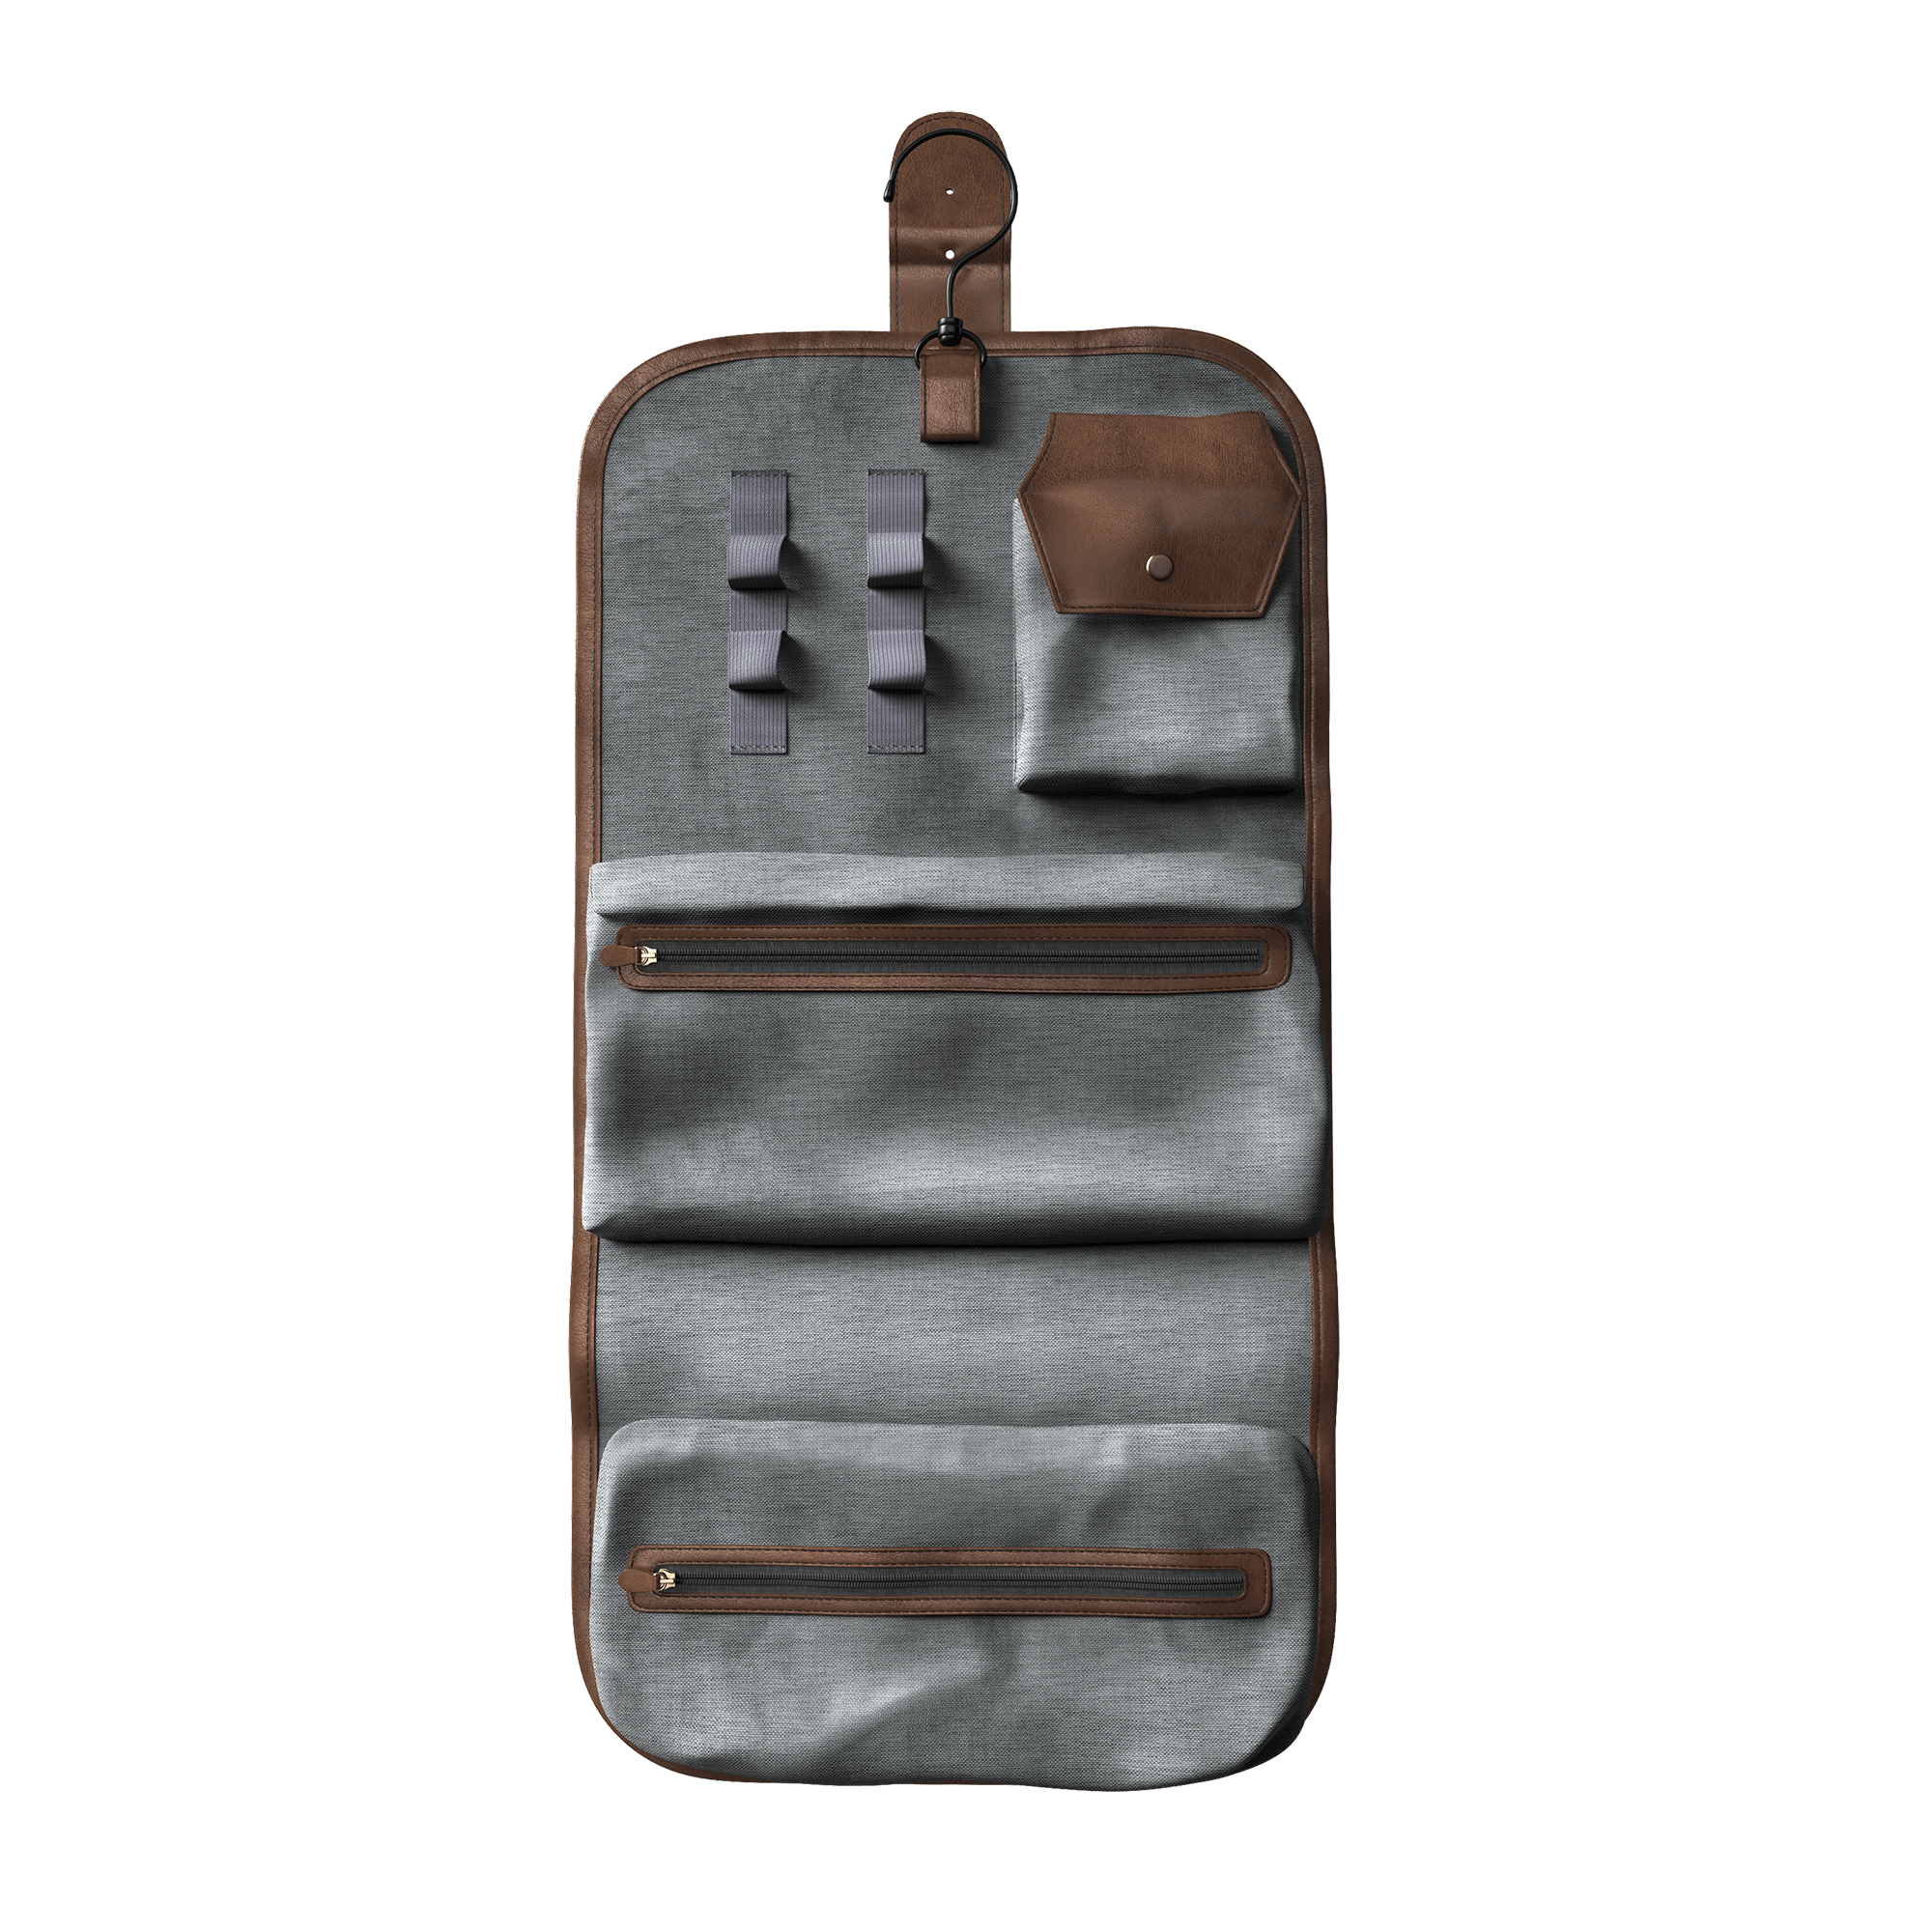 Bossman Hanging Toiletry Leather Bag Open